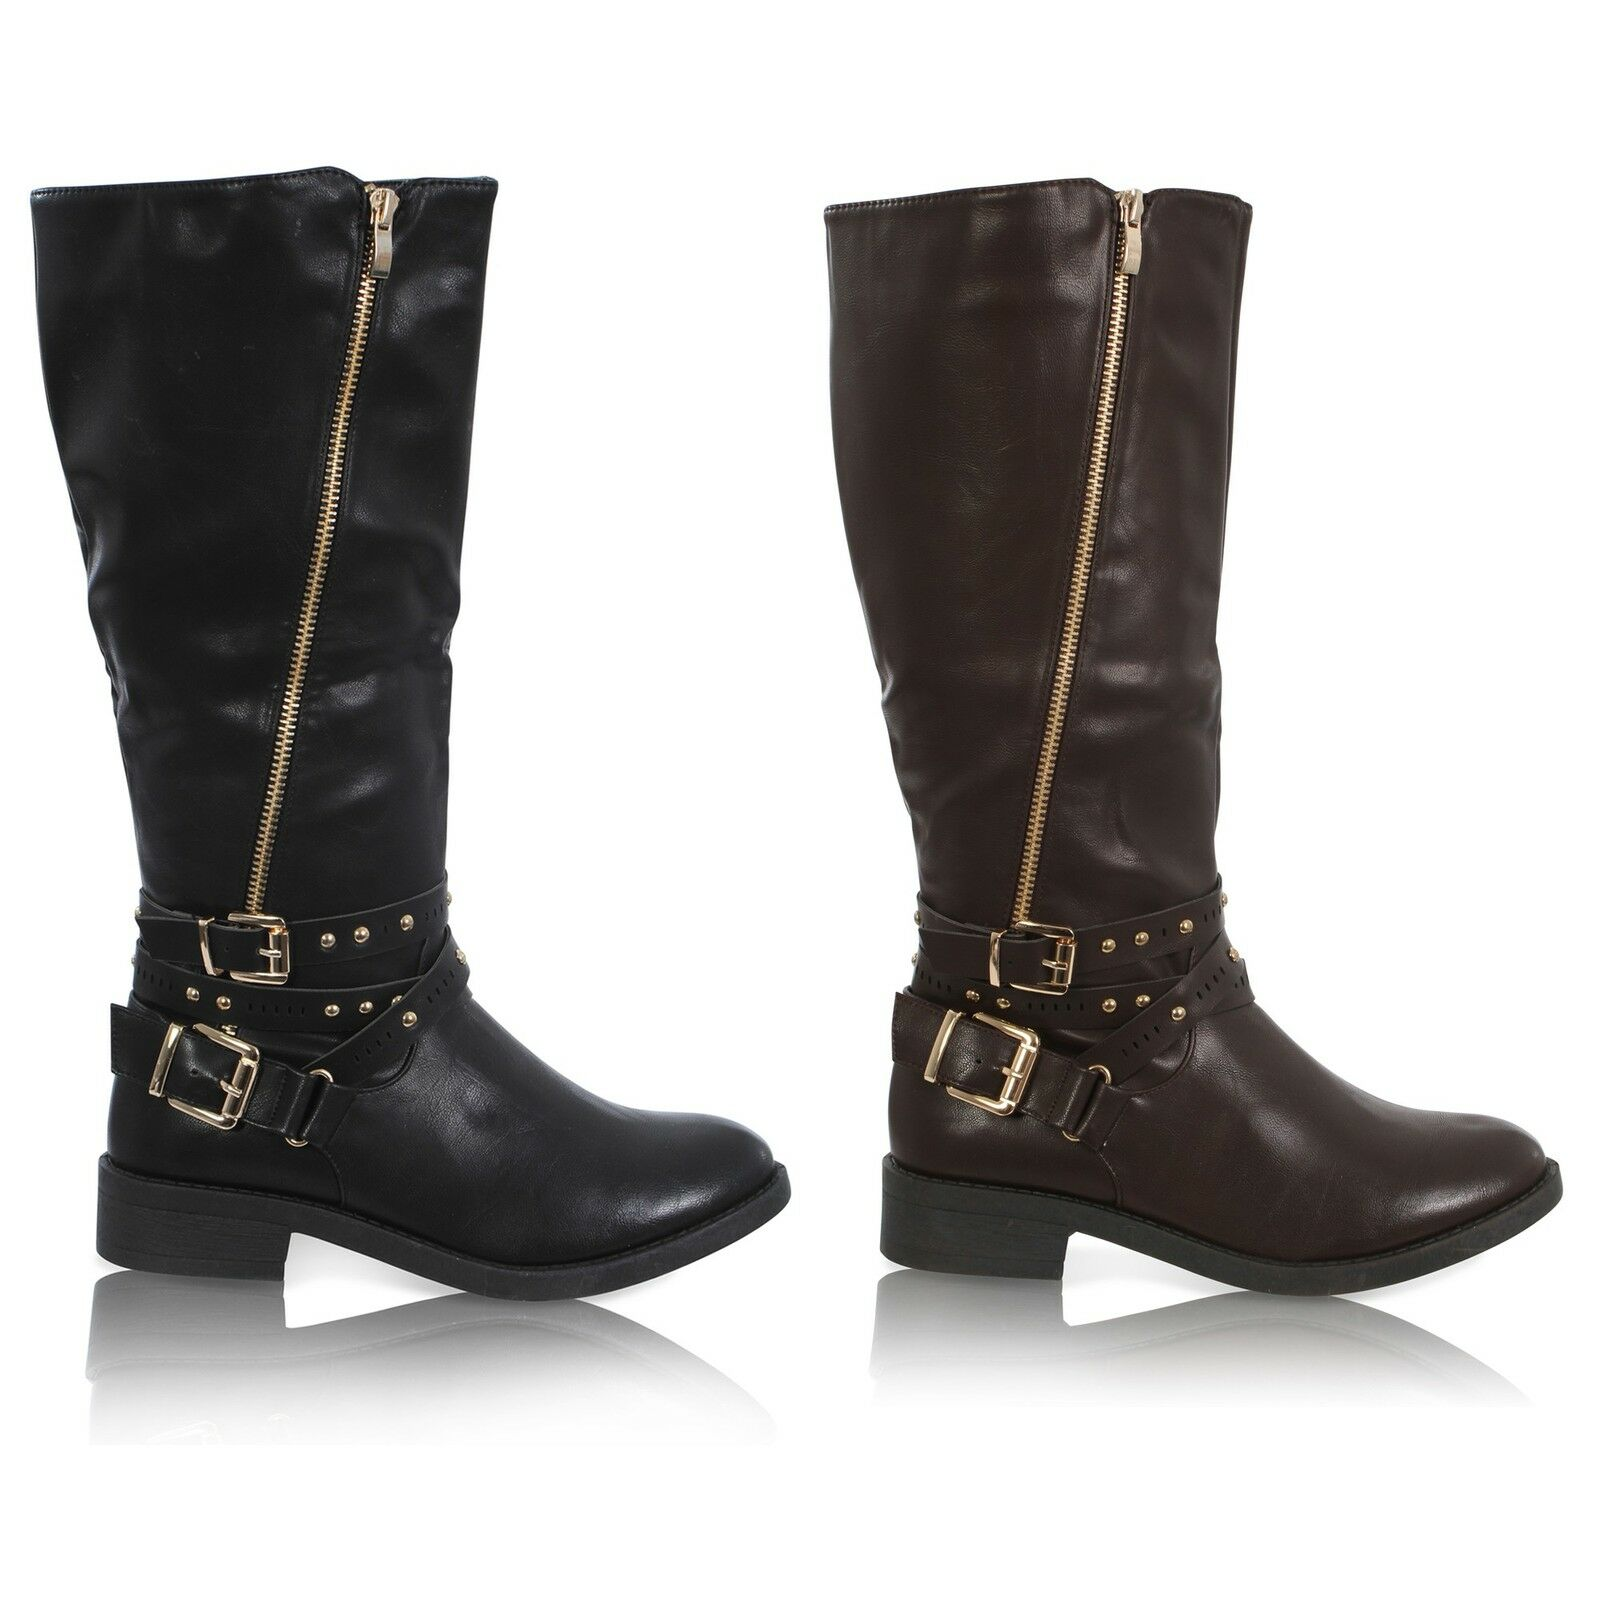 NEW WOMENS LADIES MID CALF STUDDED ZIP UP UNDER KNEE BUCKLE BOOTS SHOES SIZE 3-8